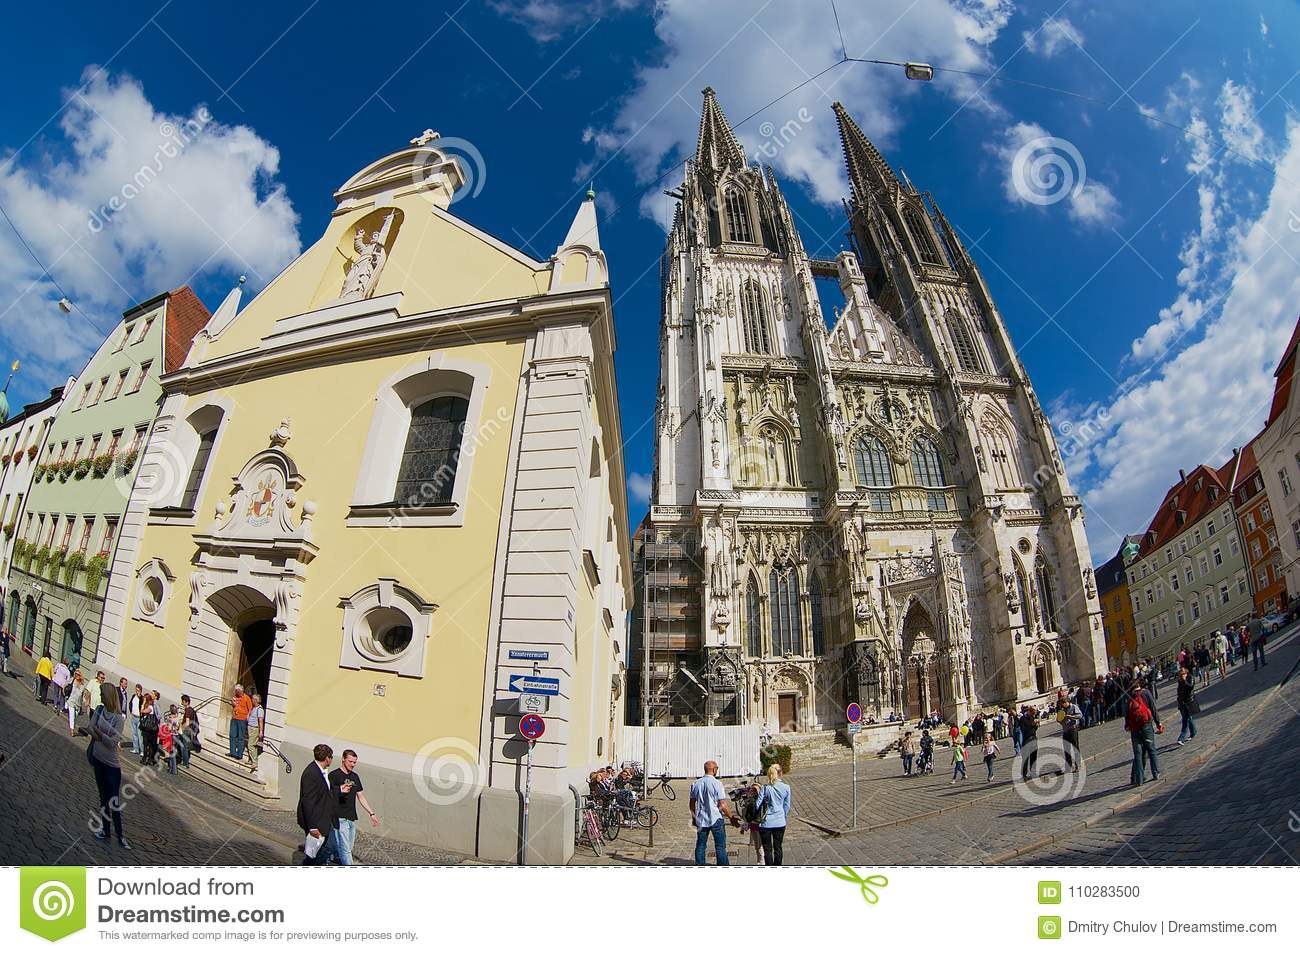 People walk by the street of the historical part of Regensburg, Germany.